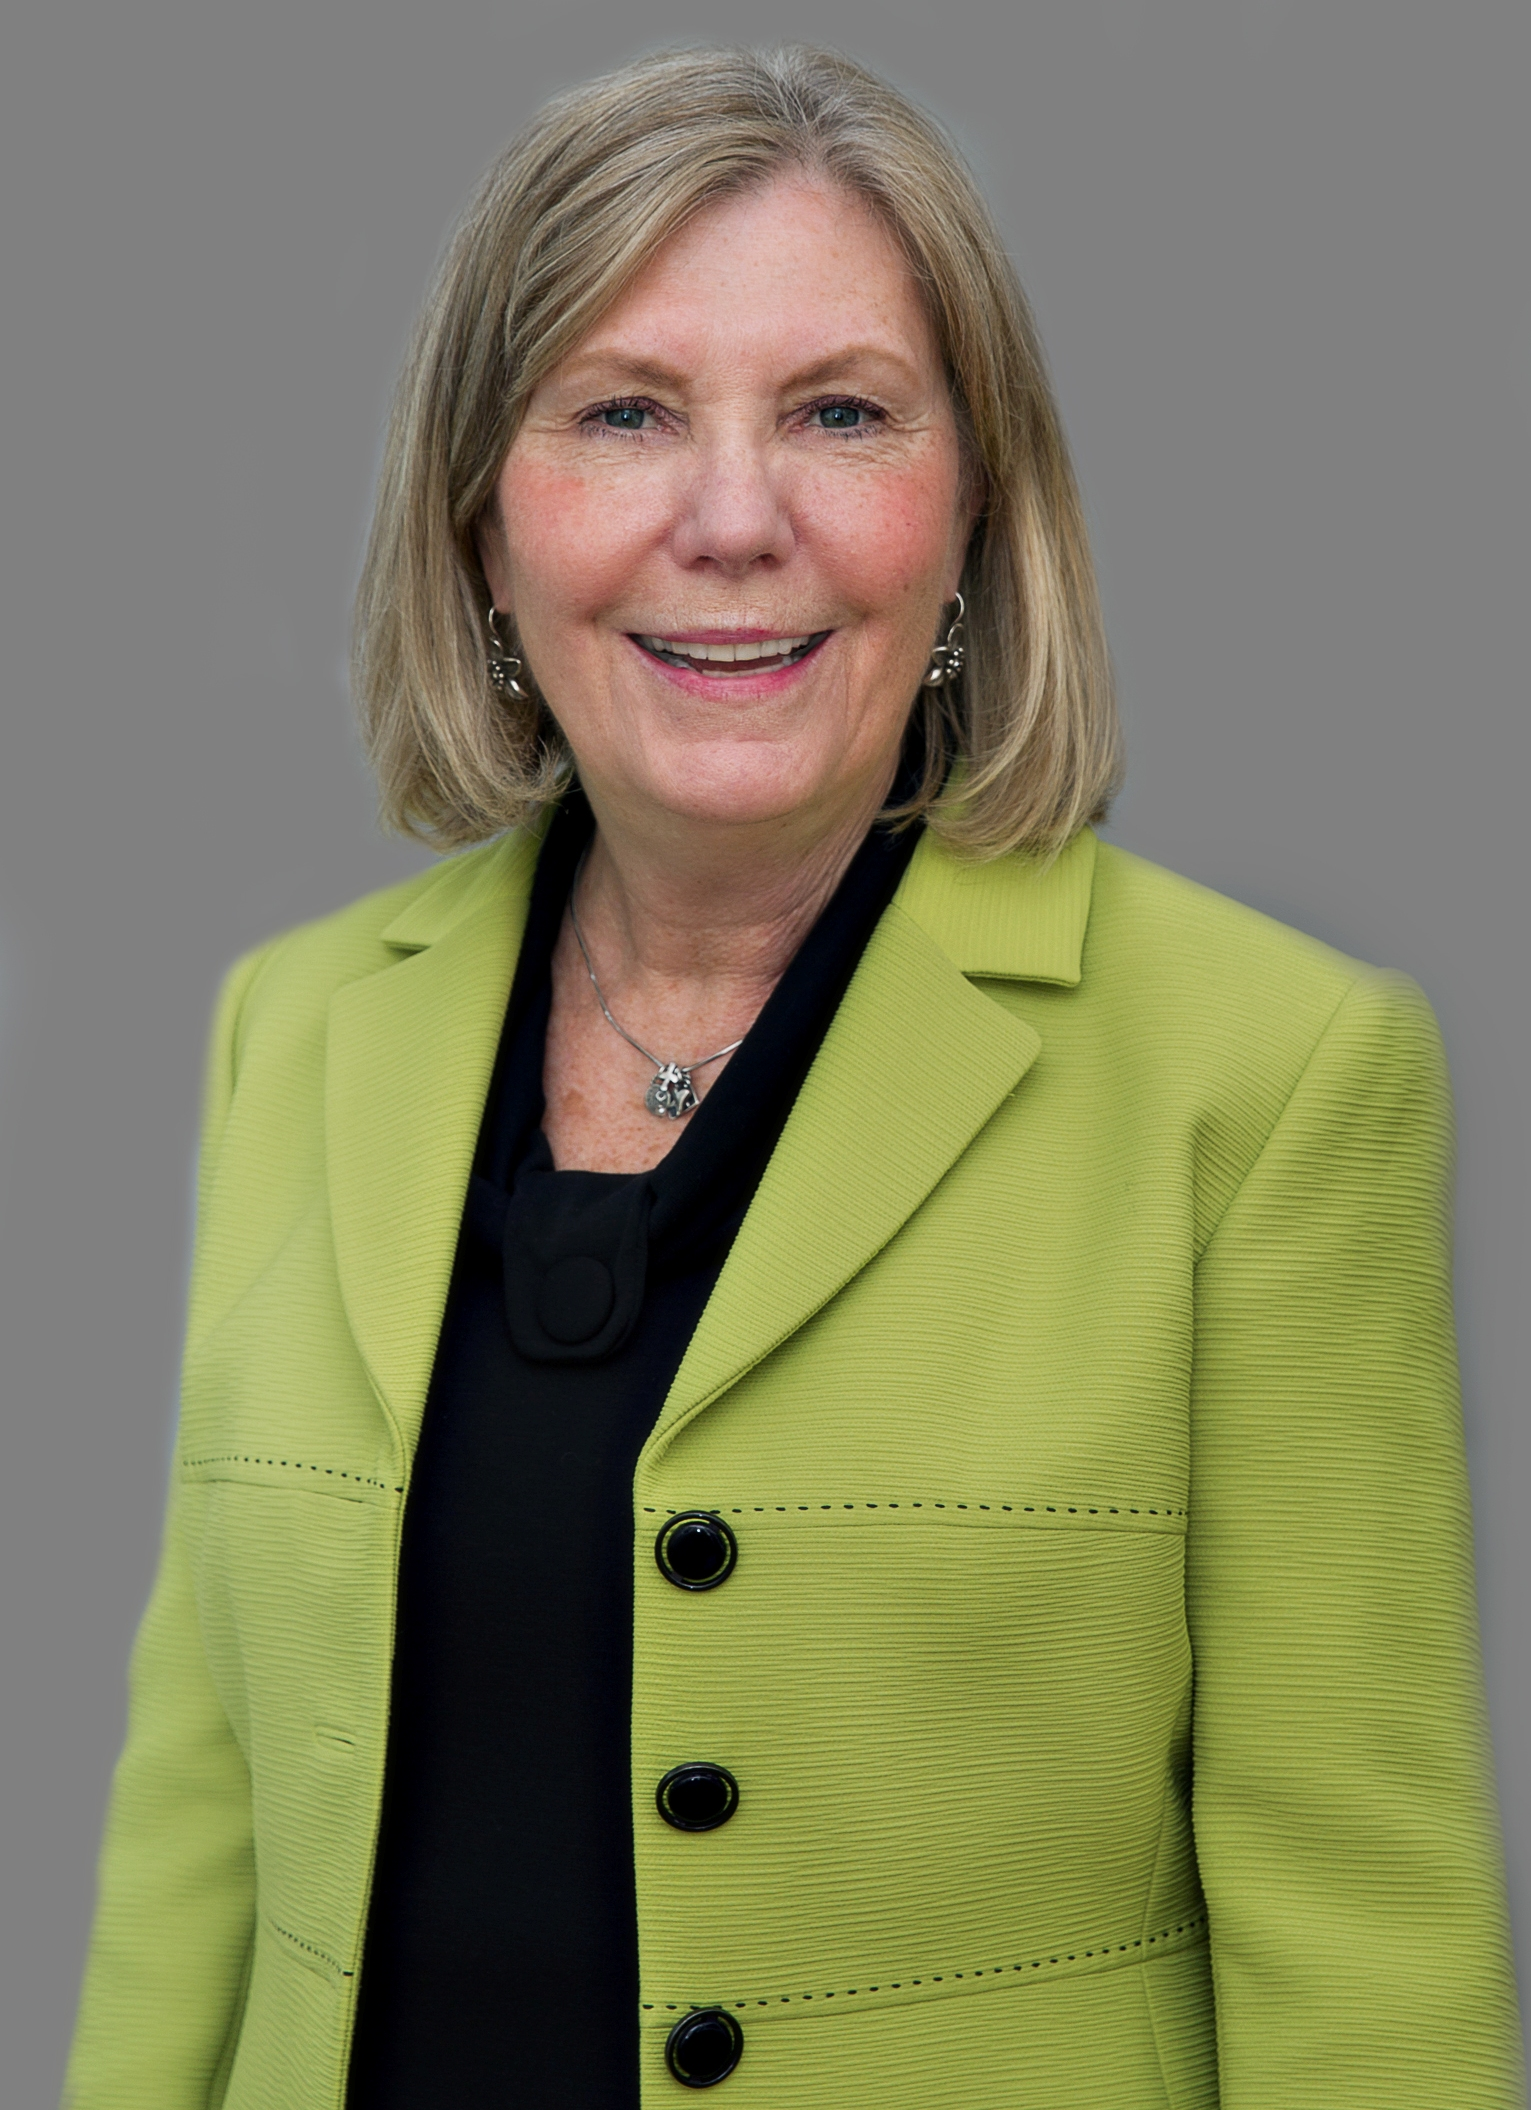 Ms Eileen Clayton Has Been Appointed By Wartburg To The